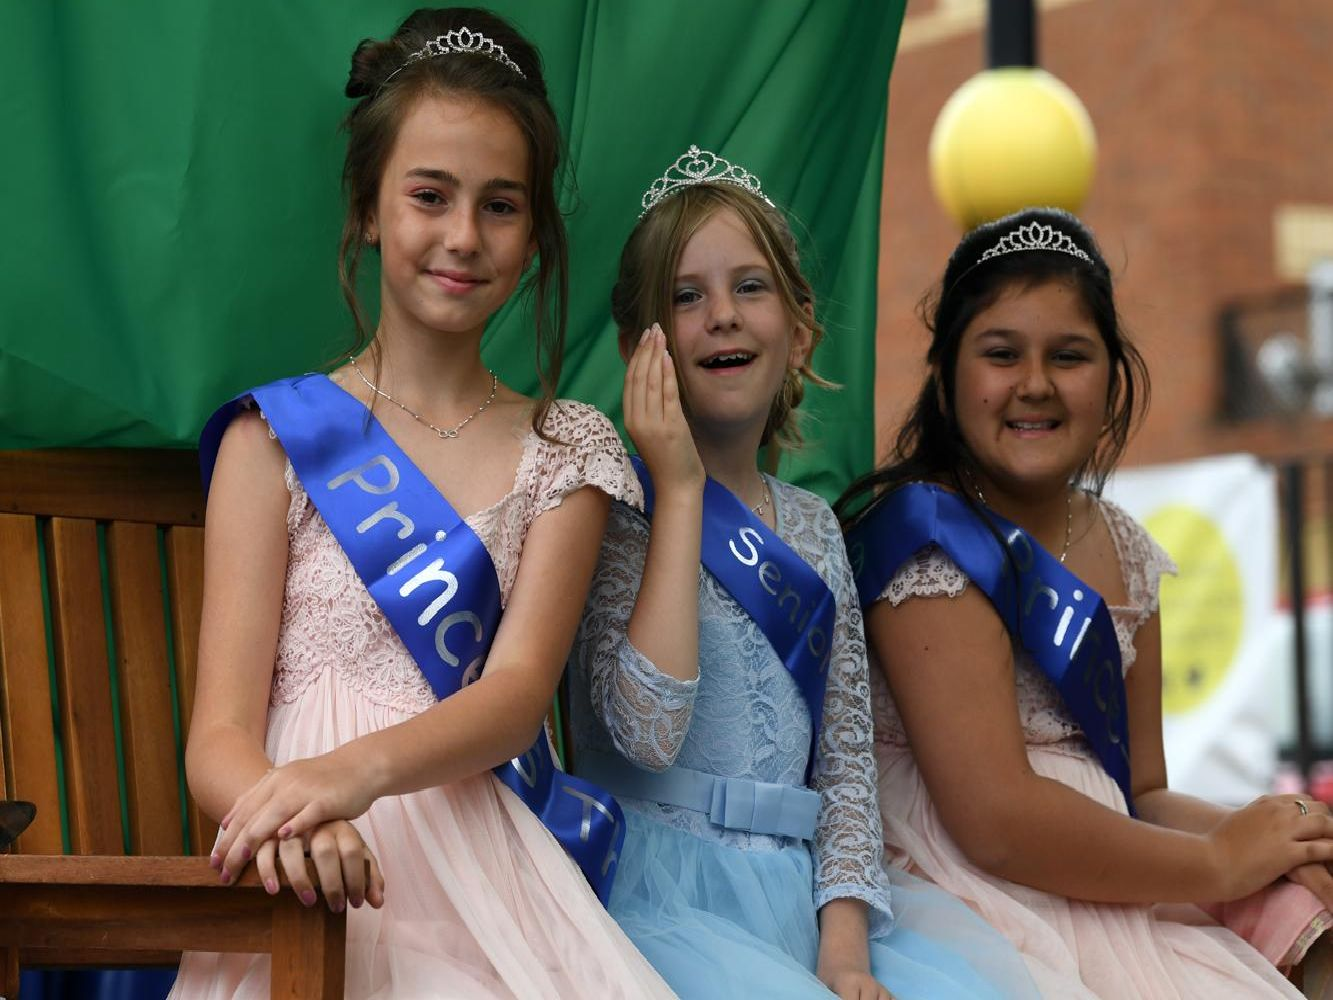 Senior princess Maisie Reyland and the two princesses Maya Esposito  and Thea Shillingford at Leighton Buzzard Carnival 2019.